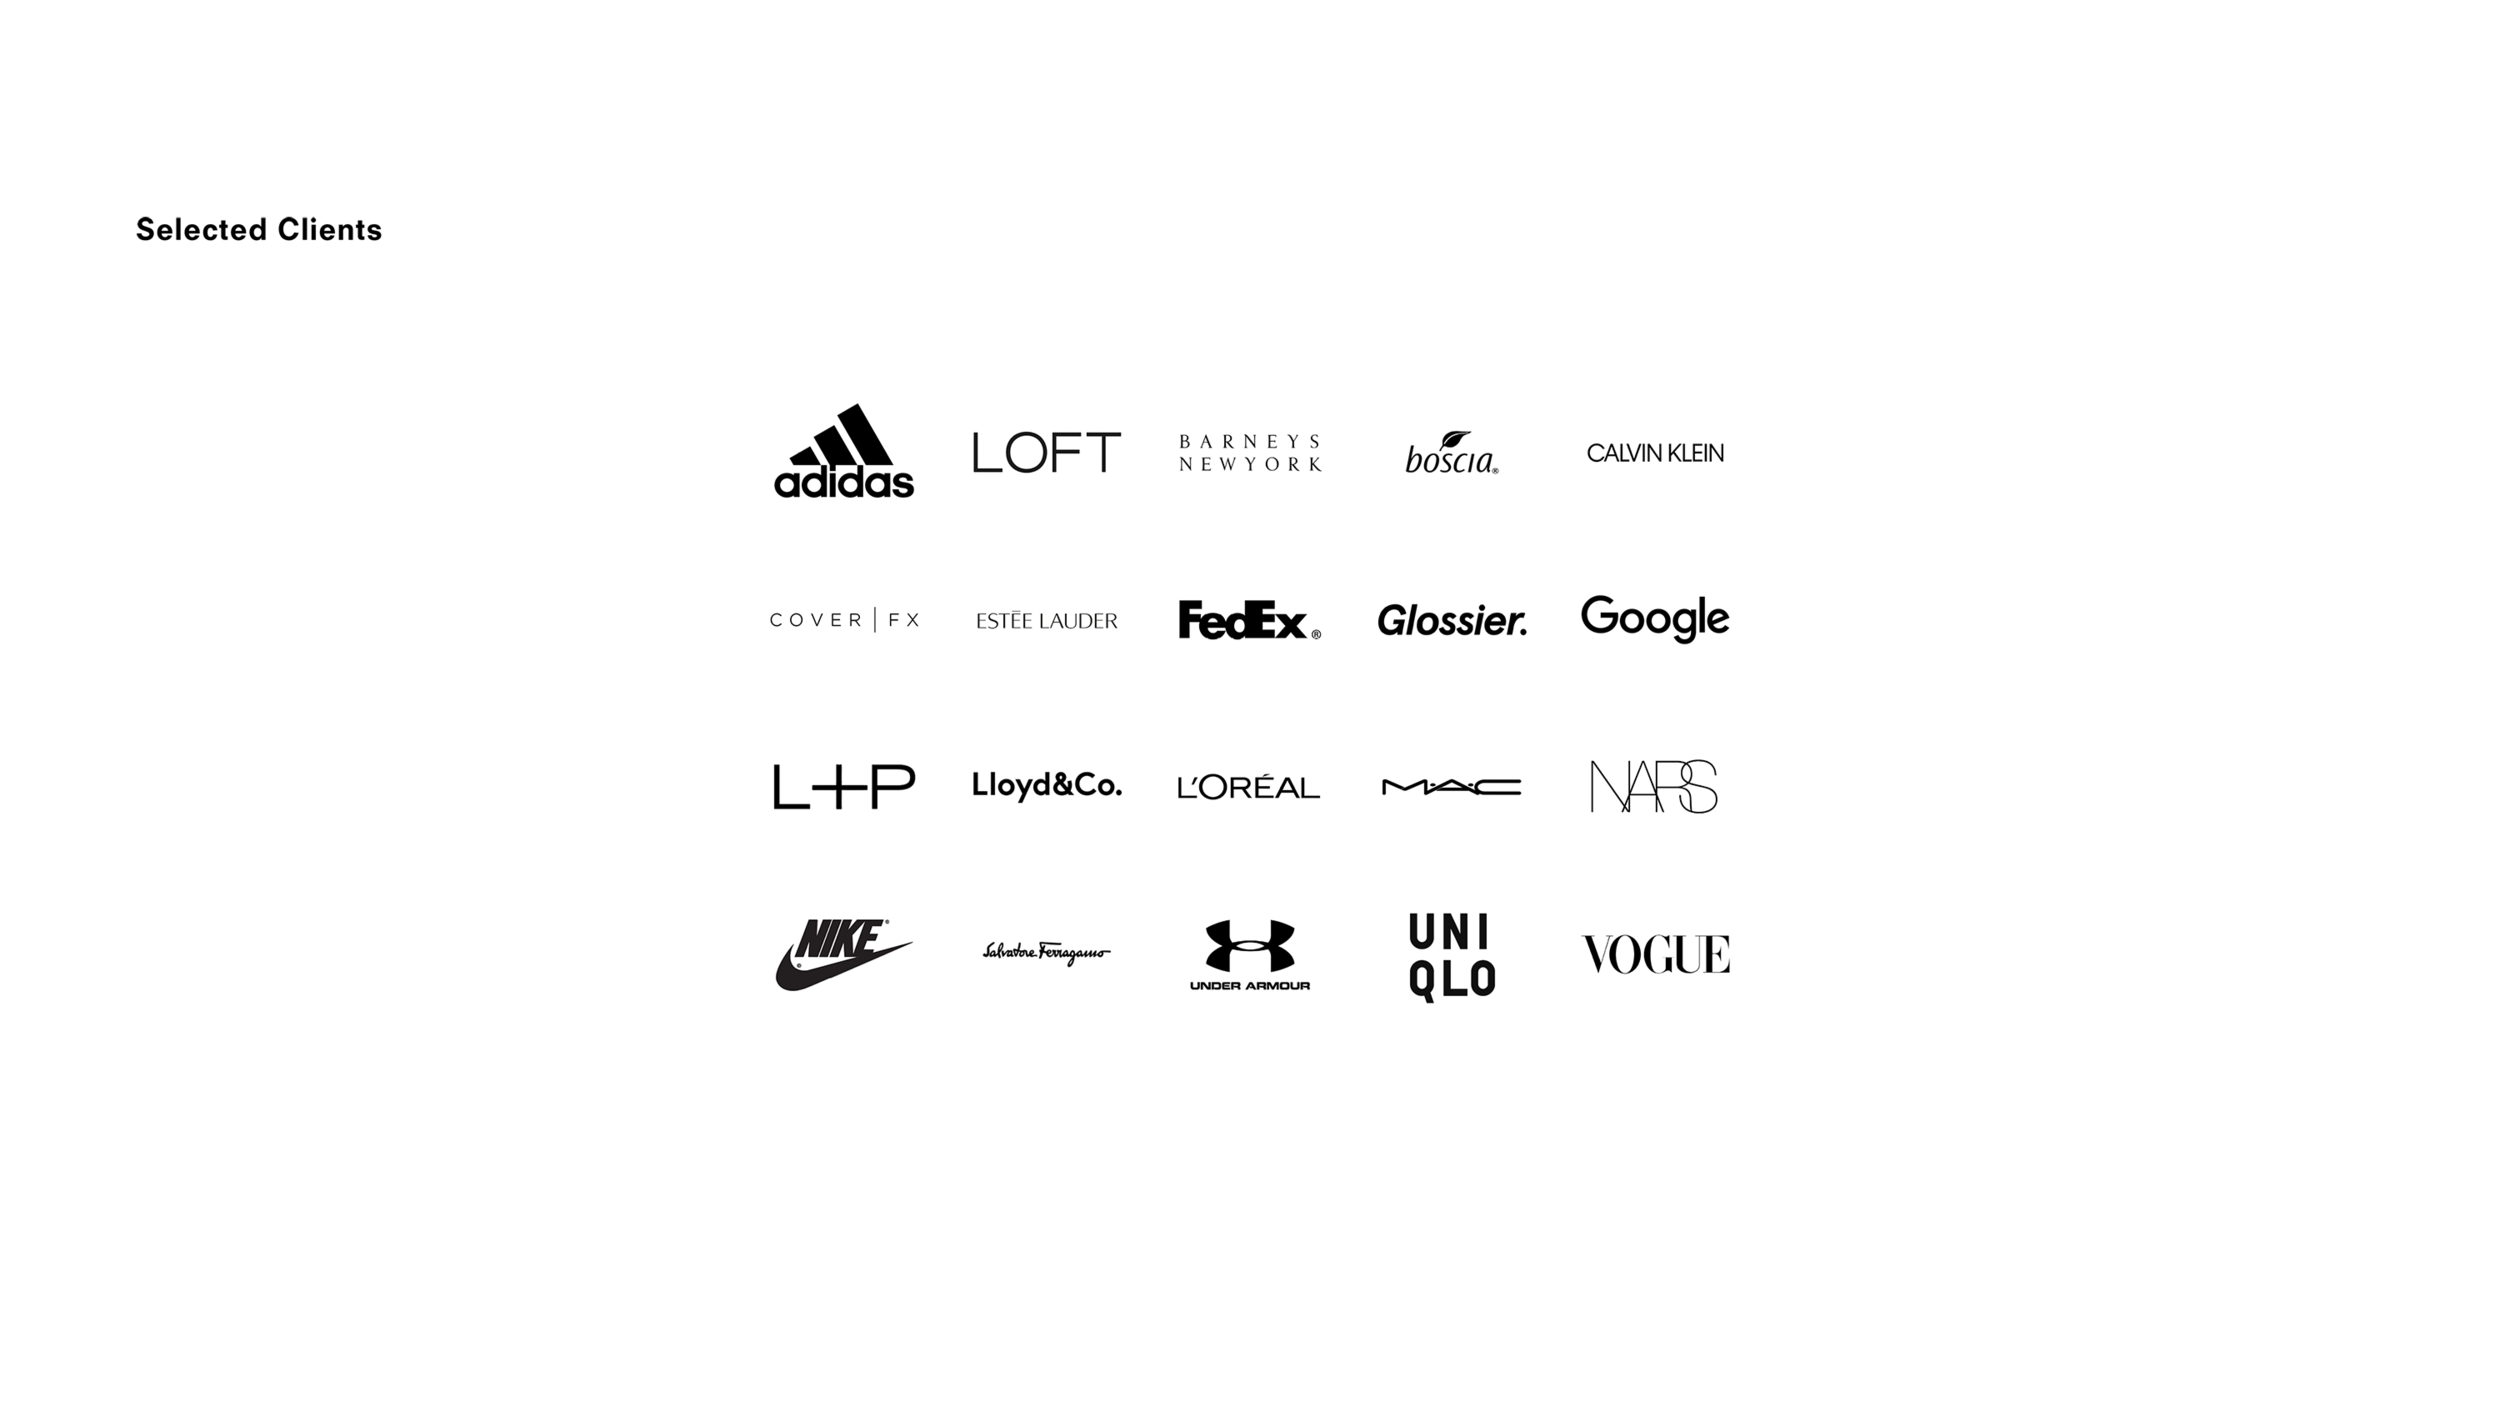 Bespoke_Deck_Template_19_white Adidas34.png